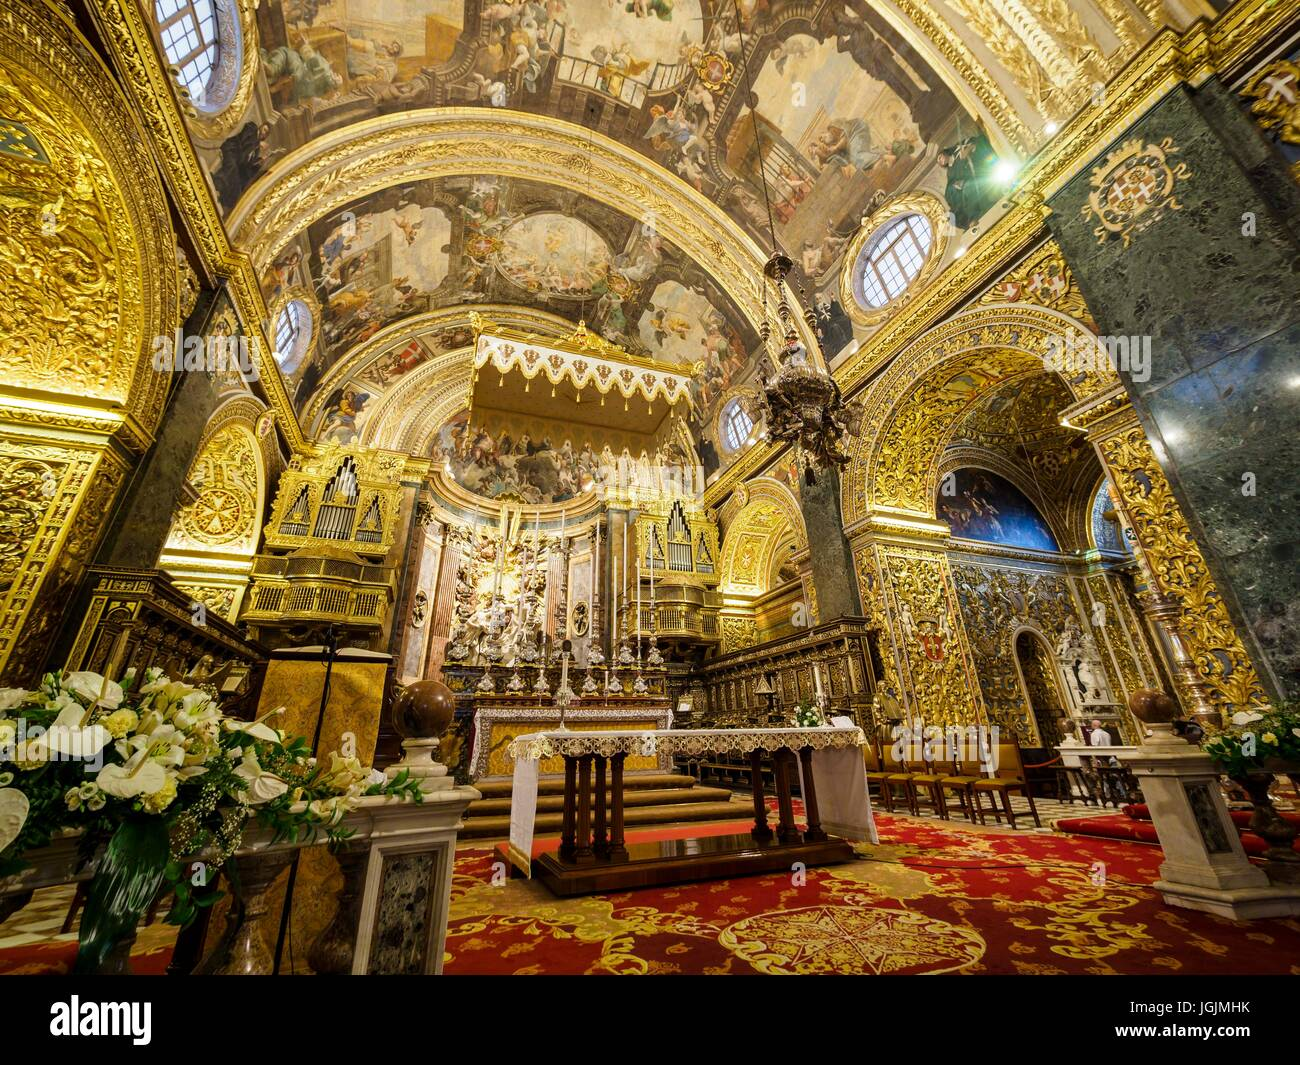 The sanctuary of St. John's Co-Cathedral at the capital Valletta / Malta - Stock Image